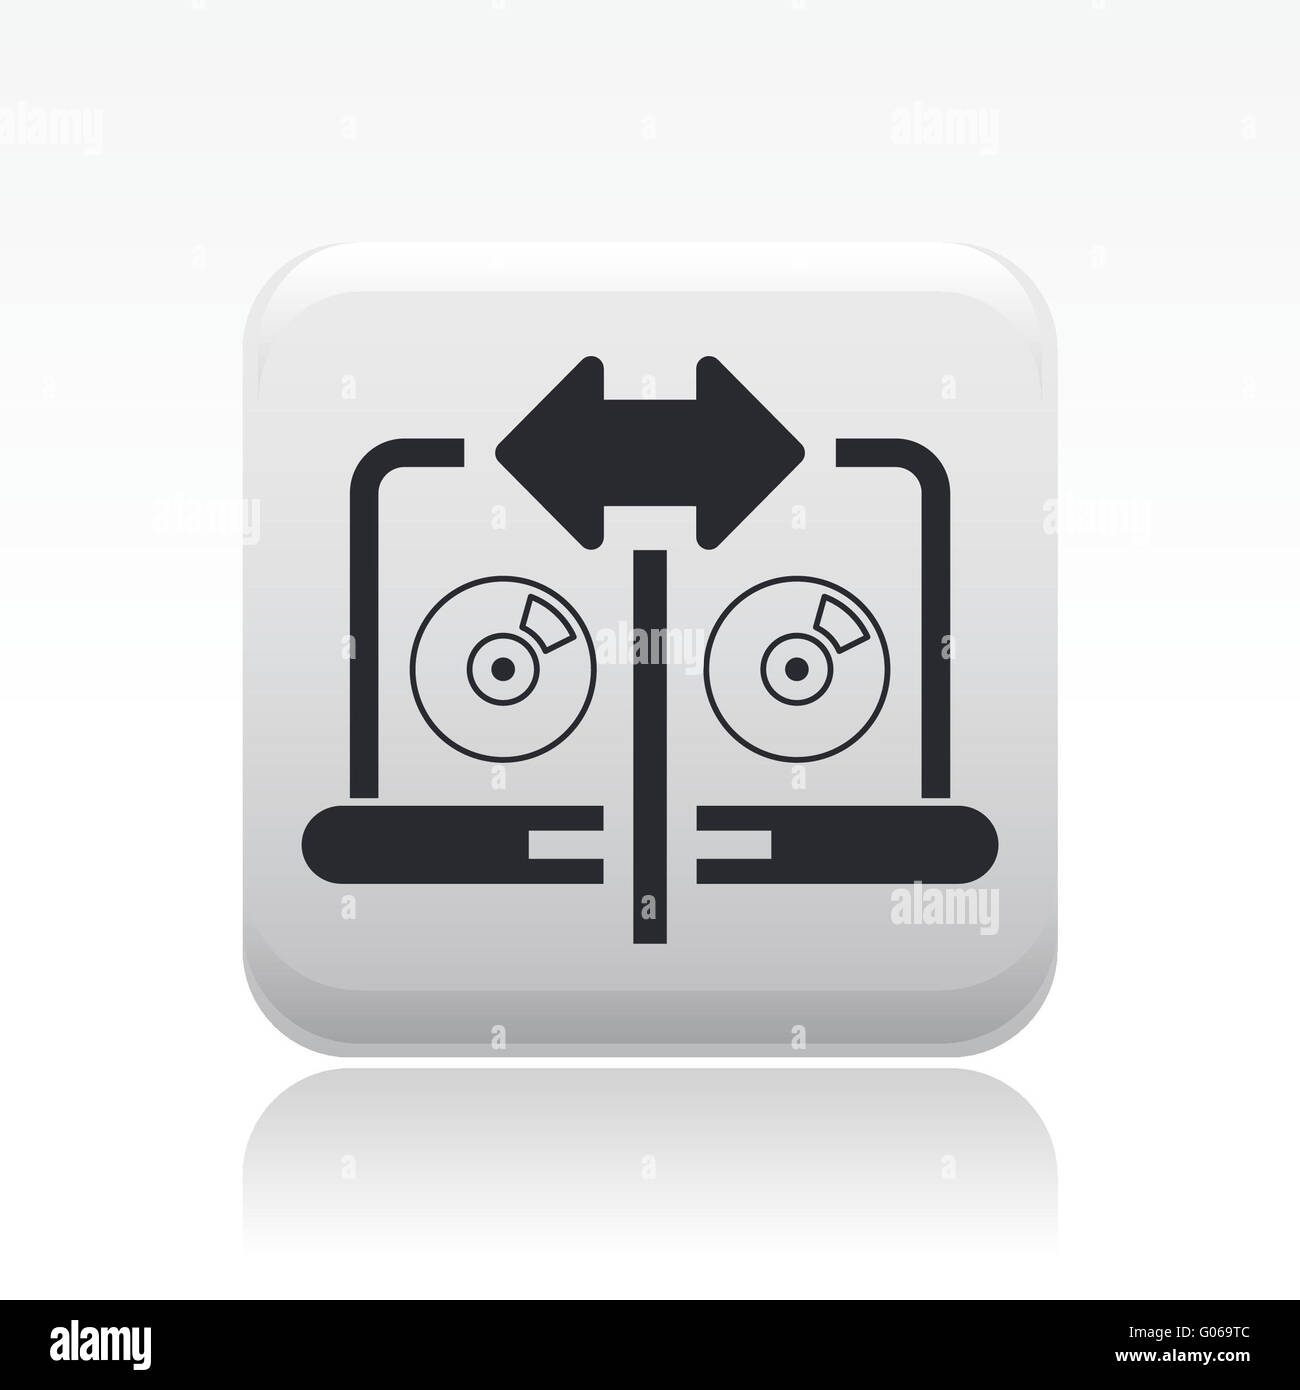 Vector illustration of single share pc icon - Stock Image